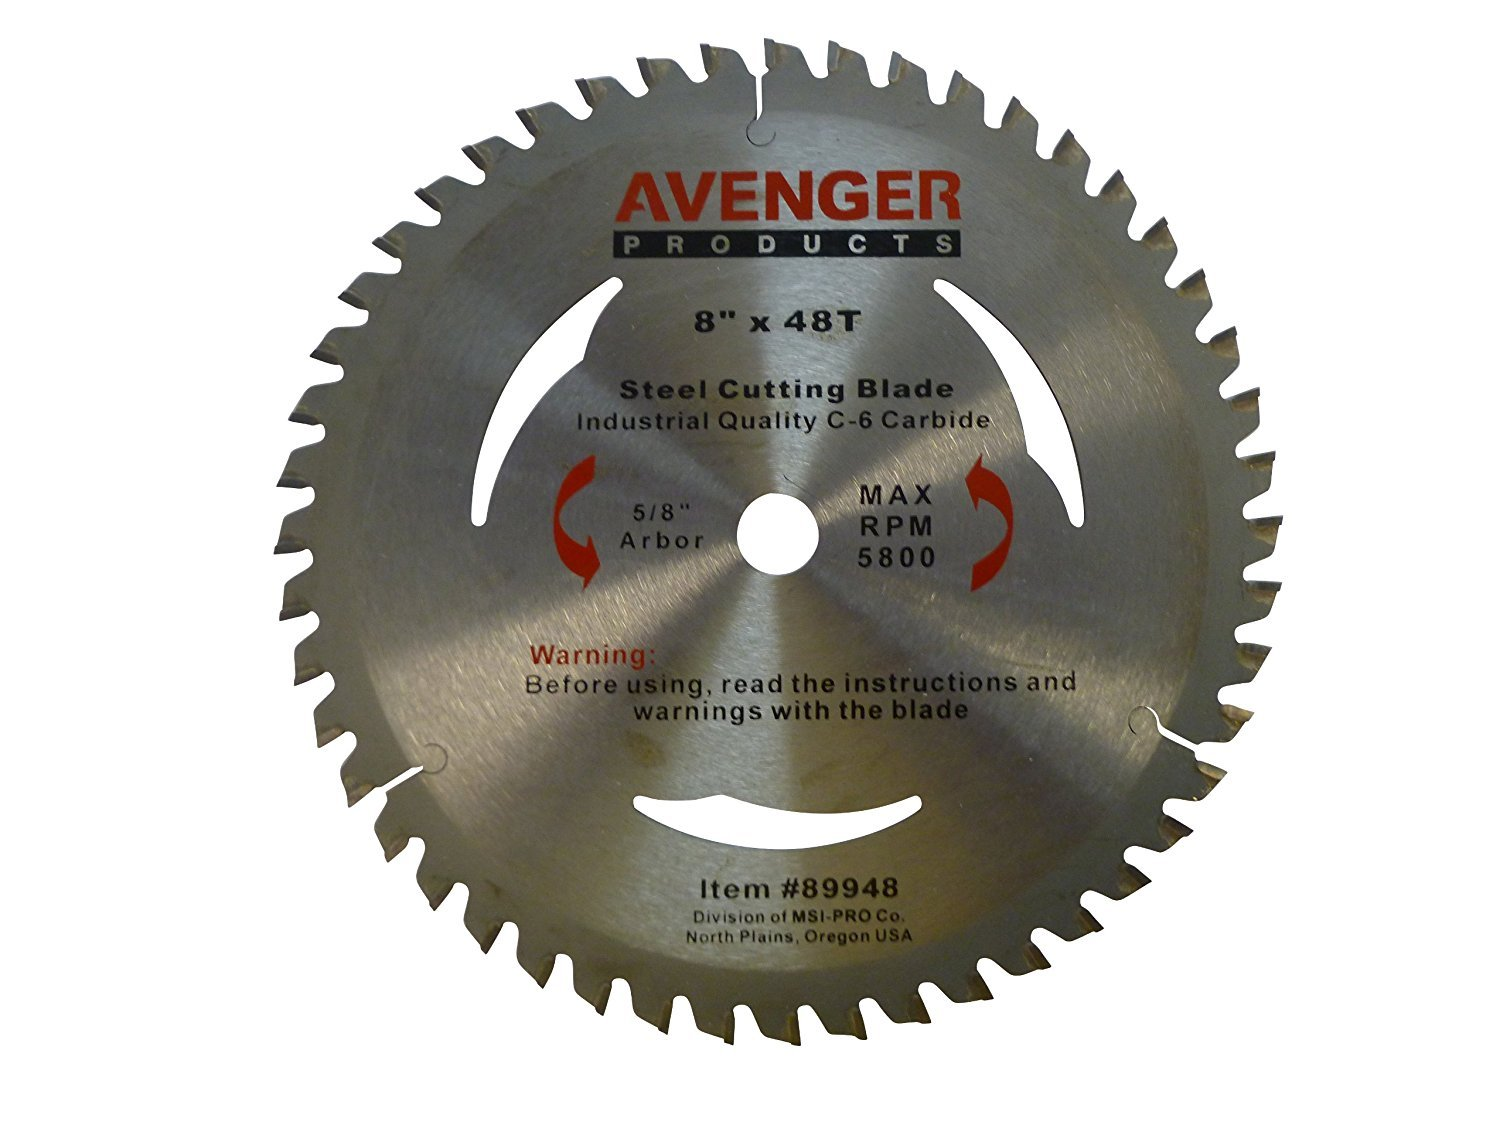 Avenger AV-89948 Steel Cutting Saw Blade, 8-inch by 48 tooth, 5/8-inch arbor, C-6, TCG